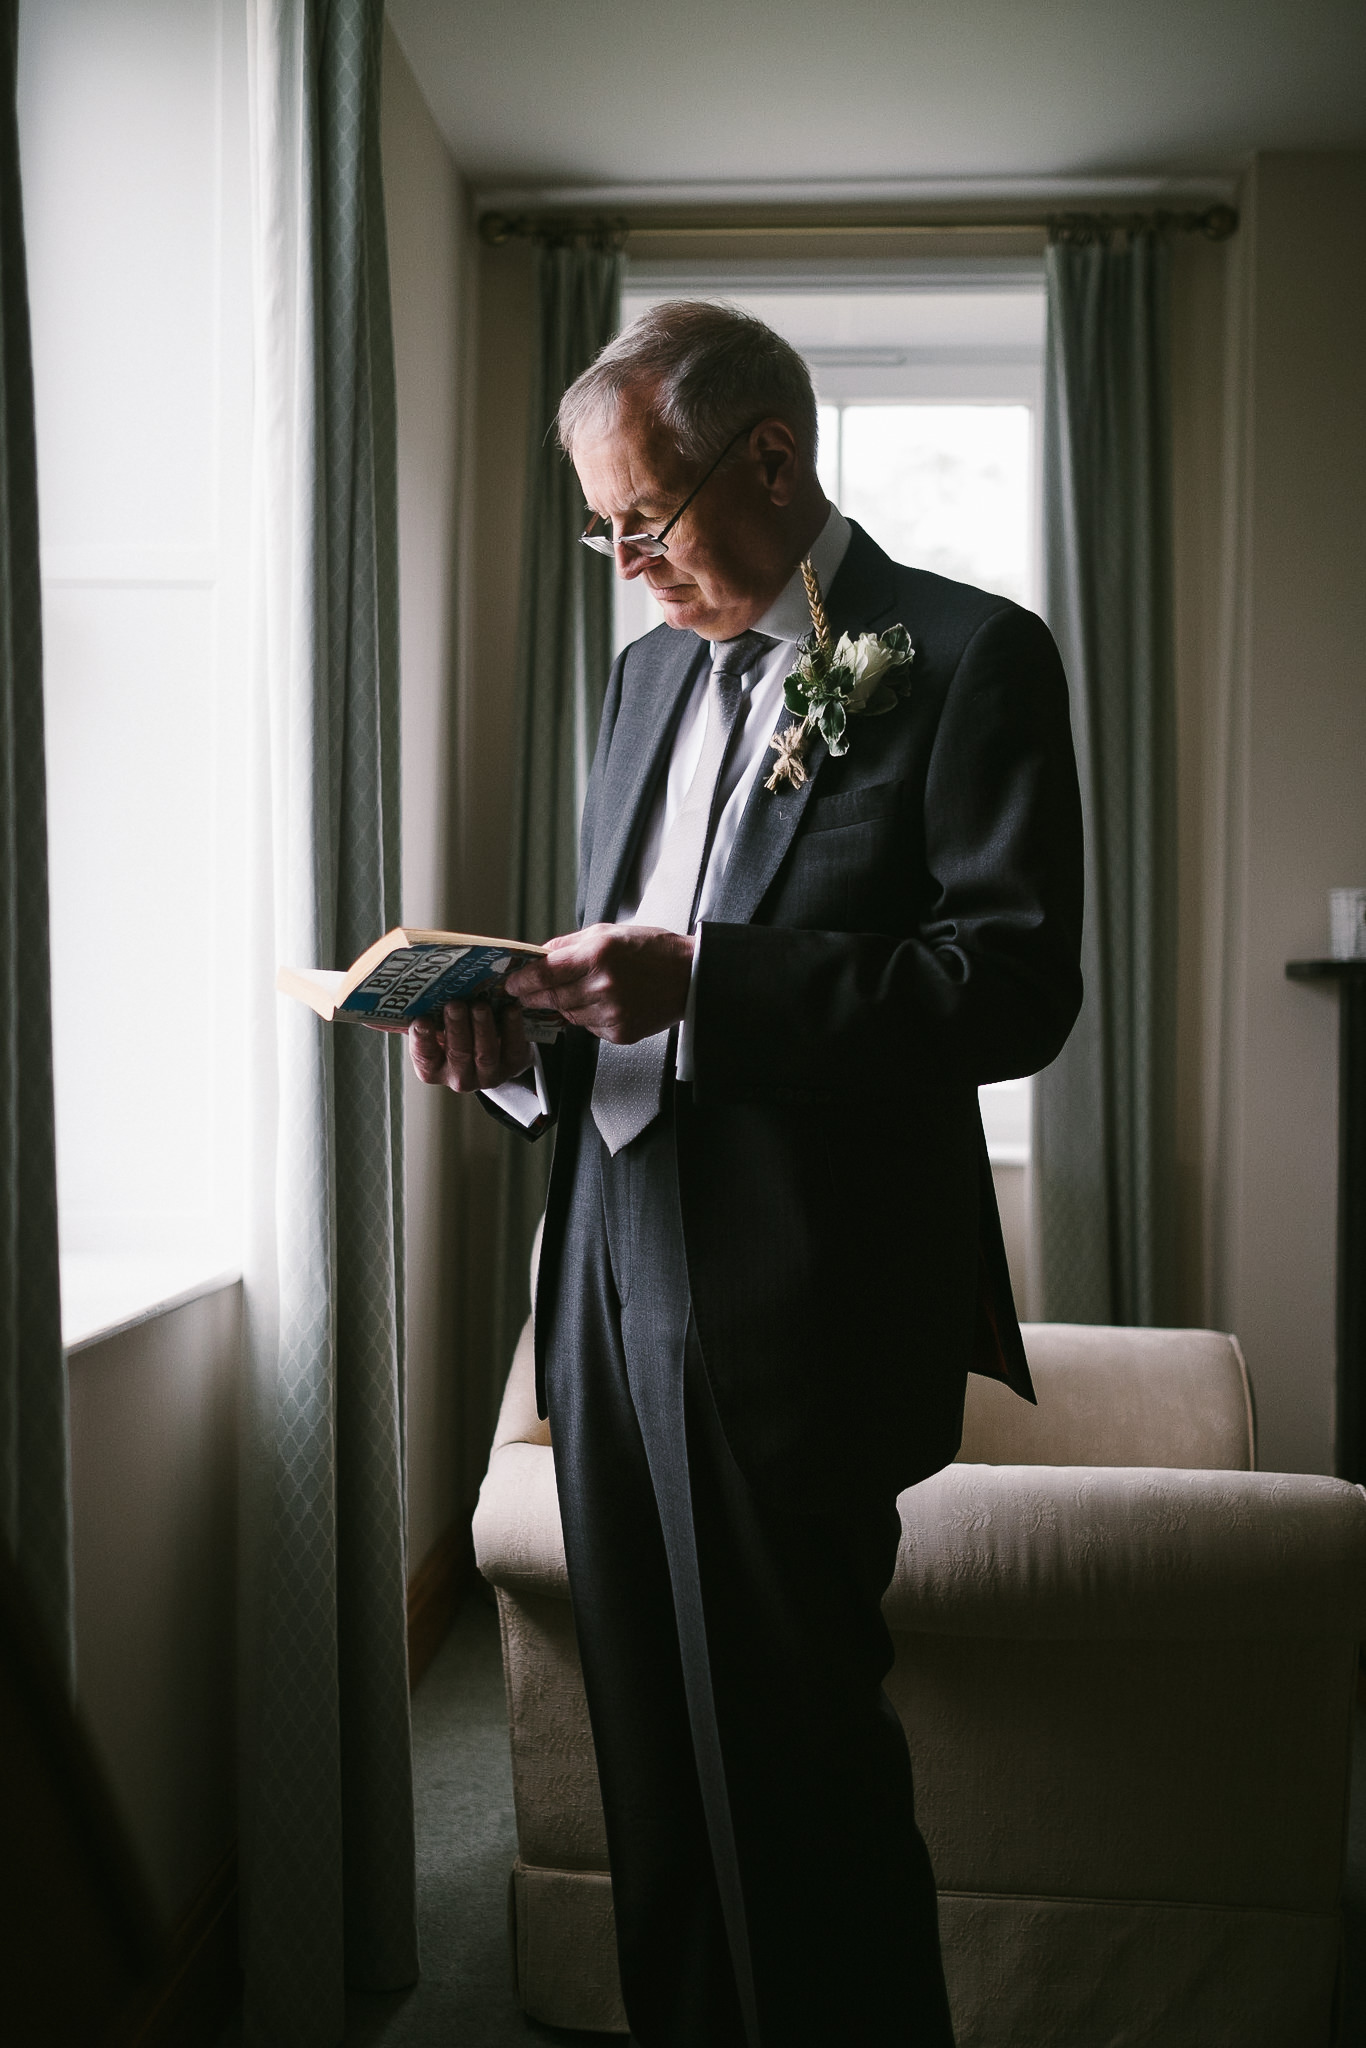 The father of the groom reads a book in front of a window before the wedding in Yorkshire by Barry Forshaw